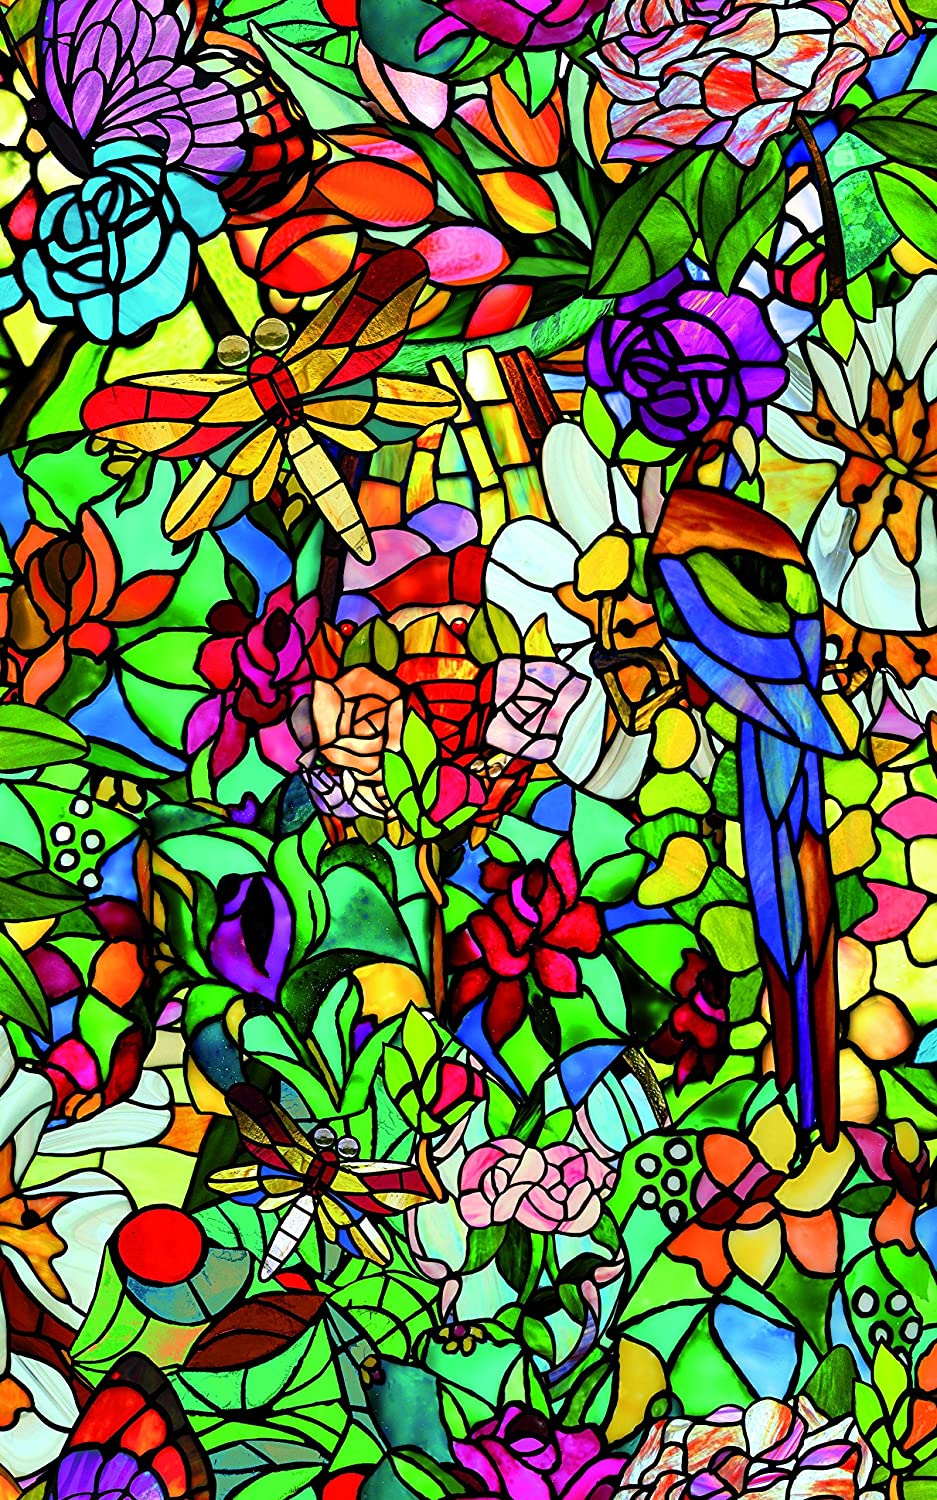 d-c-fix® Sticky Back Plastic (self adhesive vinyl window film) Stained Glass Effect Tulia 90cm x 1m (ORDER PER METRE) 200-5598 EXPSFD013170